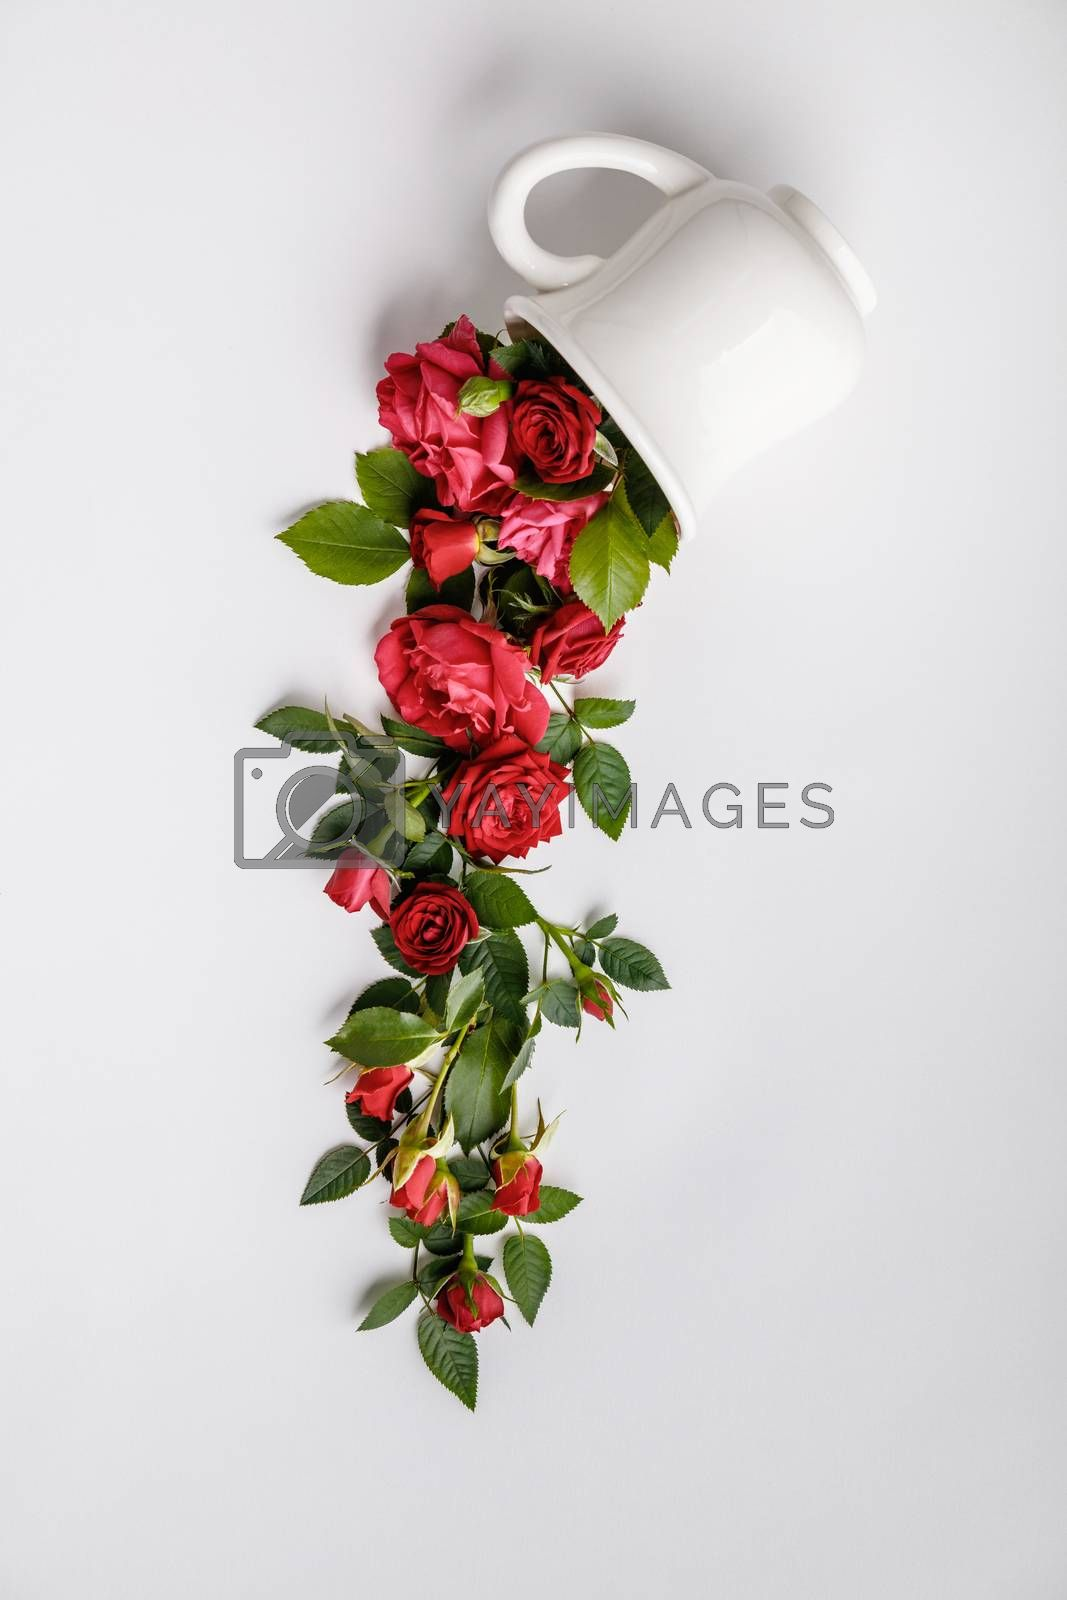 Creative layout made of coffee or tea cup with red roses on white background by klenova